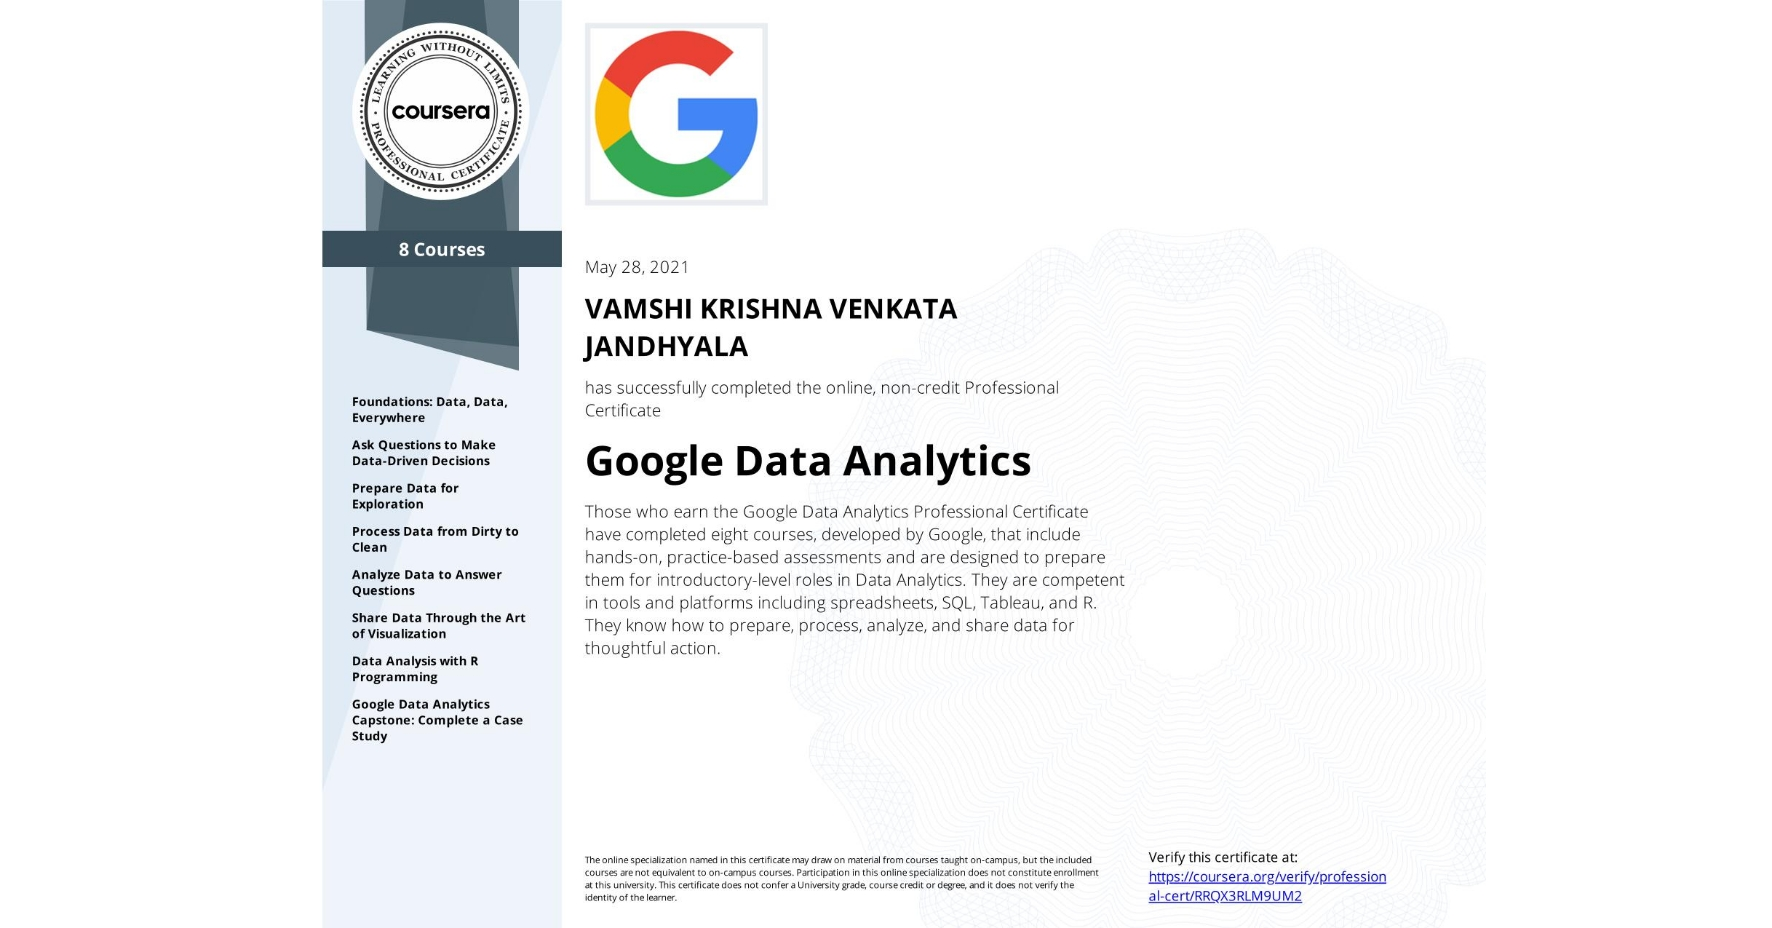 View certificate for VAMSHI KRISHNA VENKATA JANDHYALA, Google Data Analytics, offered through Coursera. Those who earn the Google Data Analytics Professional Certificate have completed eight courses, developed by Google, that include hands-on, practice-based assessments and are designed to prepare them for introductory-level roles in Data Analytics. They are competent in tools and platforms including spreadsheets, SQL, Tableau, and R. They know how to prepare, process, analyze, and share data for thoughtful action.